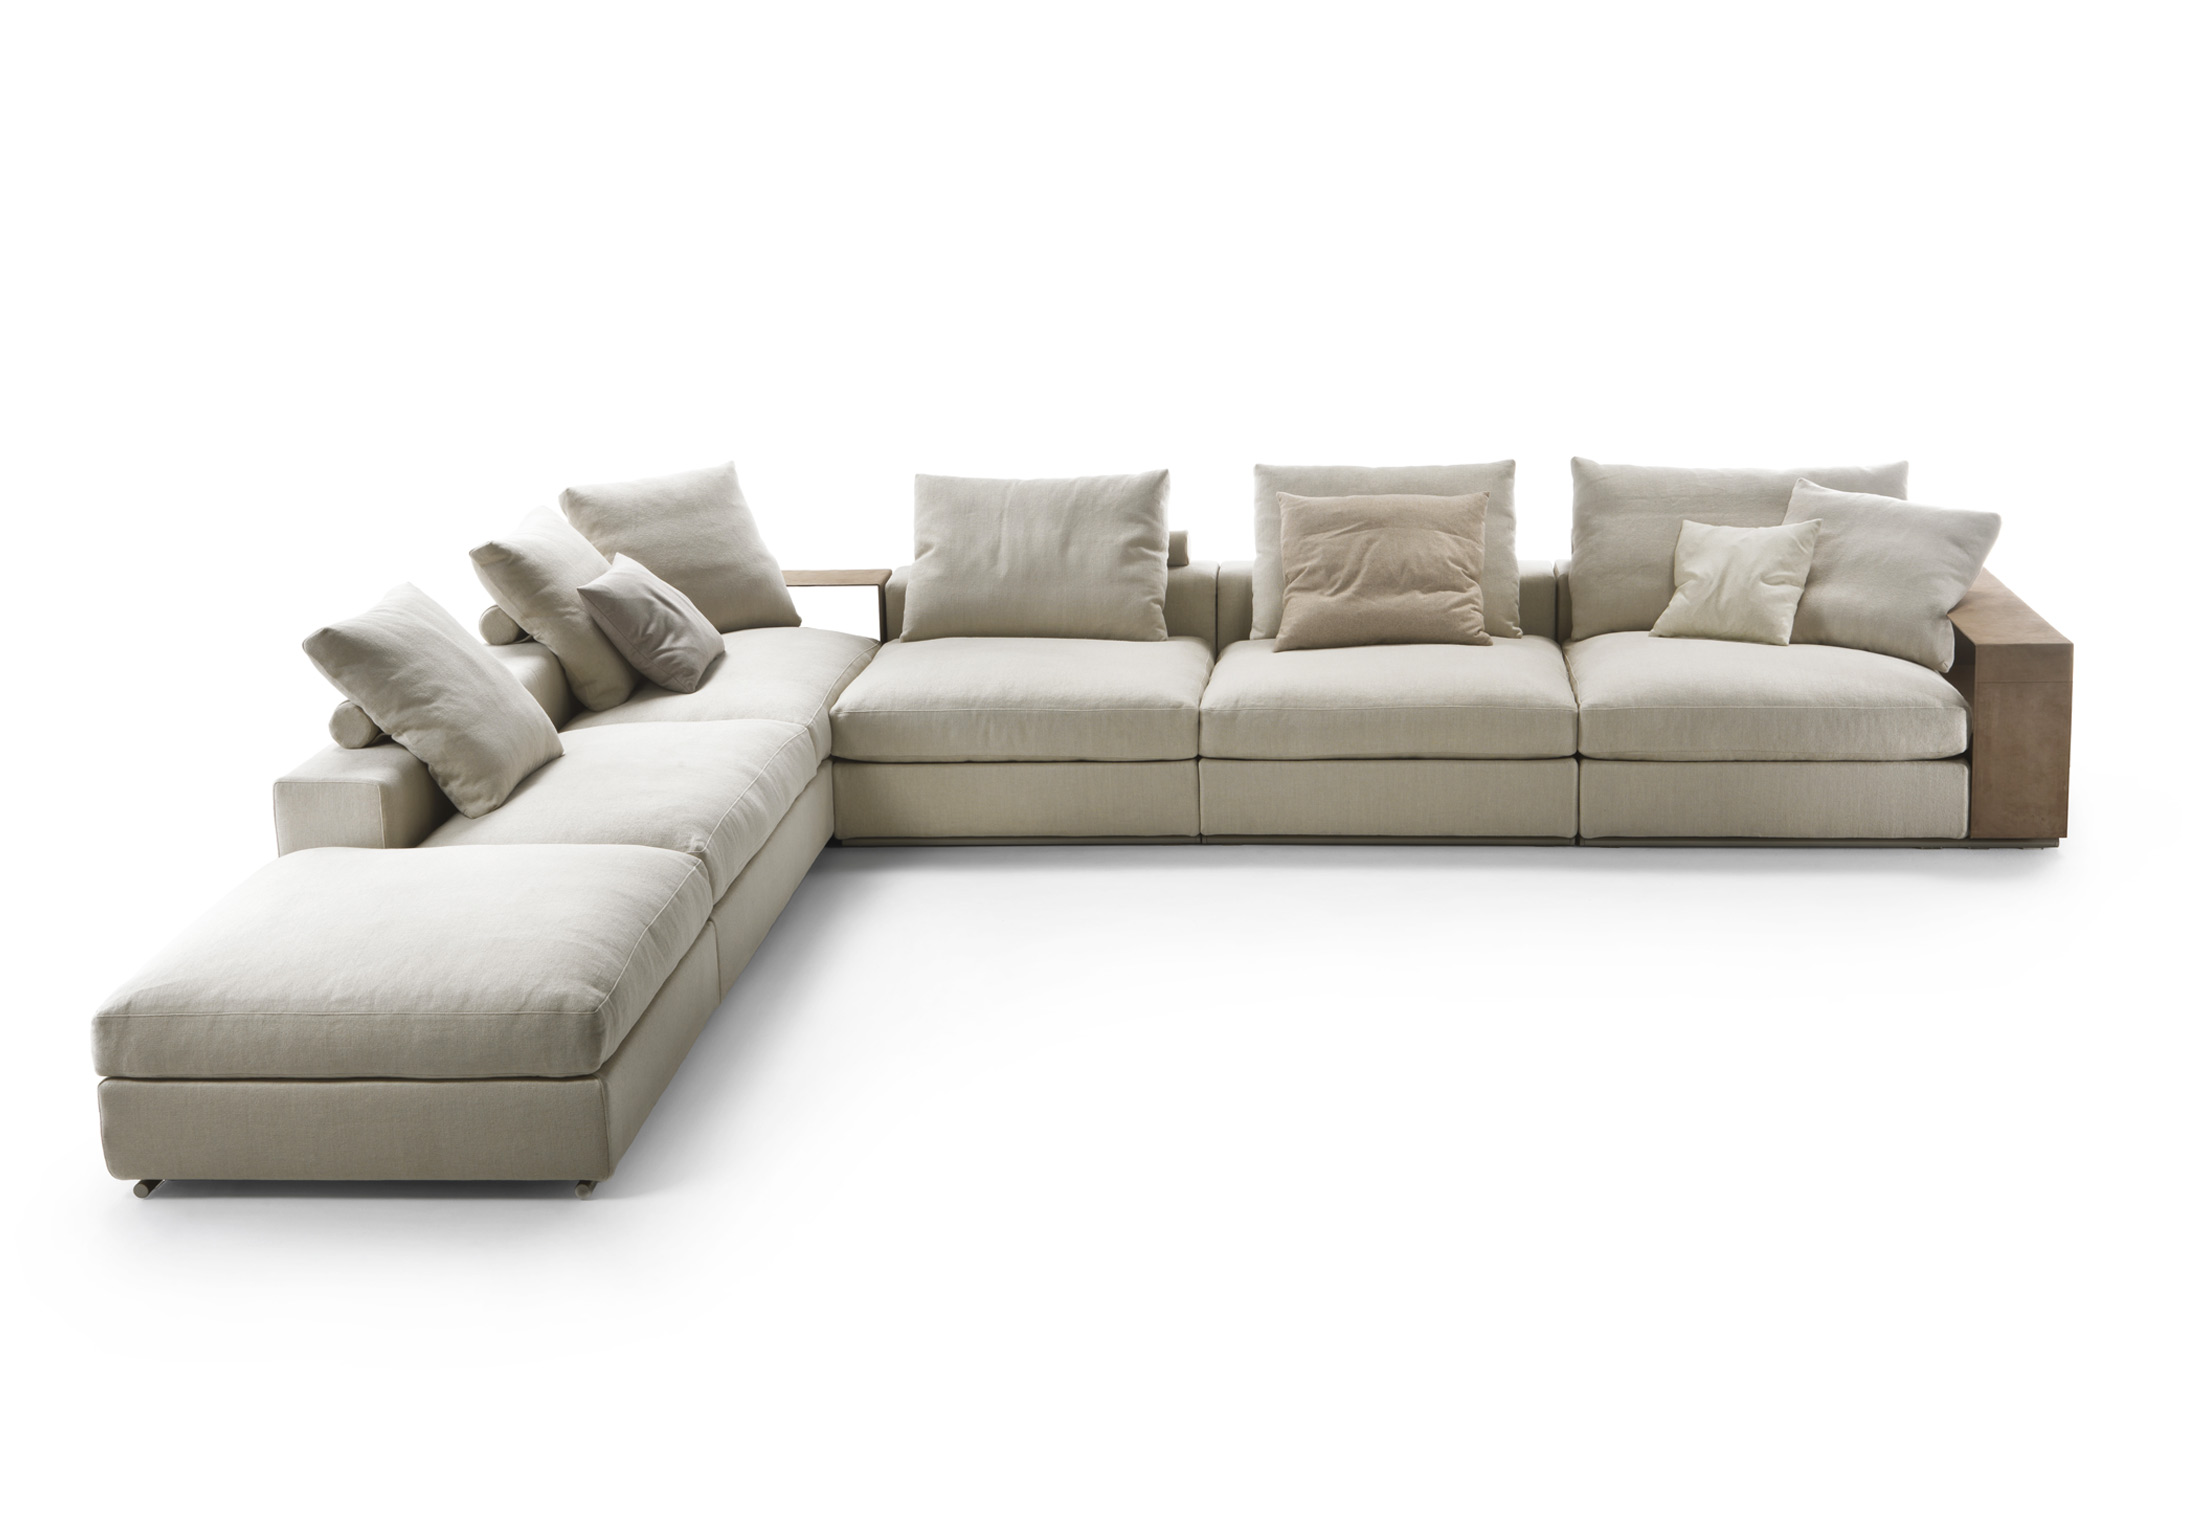 Full Size of Flexform Romeo Sofa Cost Review Lifesteel Uk Groundpiece Preis Furniture Gebraucht Gary Bed Sale Twins Sleeper Eden Sectional By Stylepark U Form Baxter Sofa Flexform Sofa